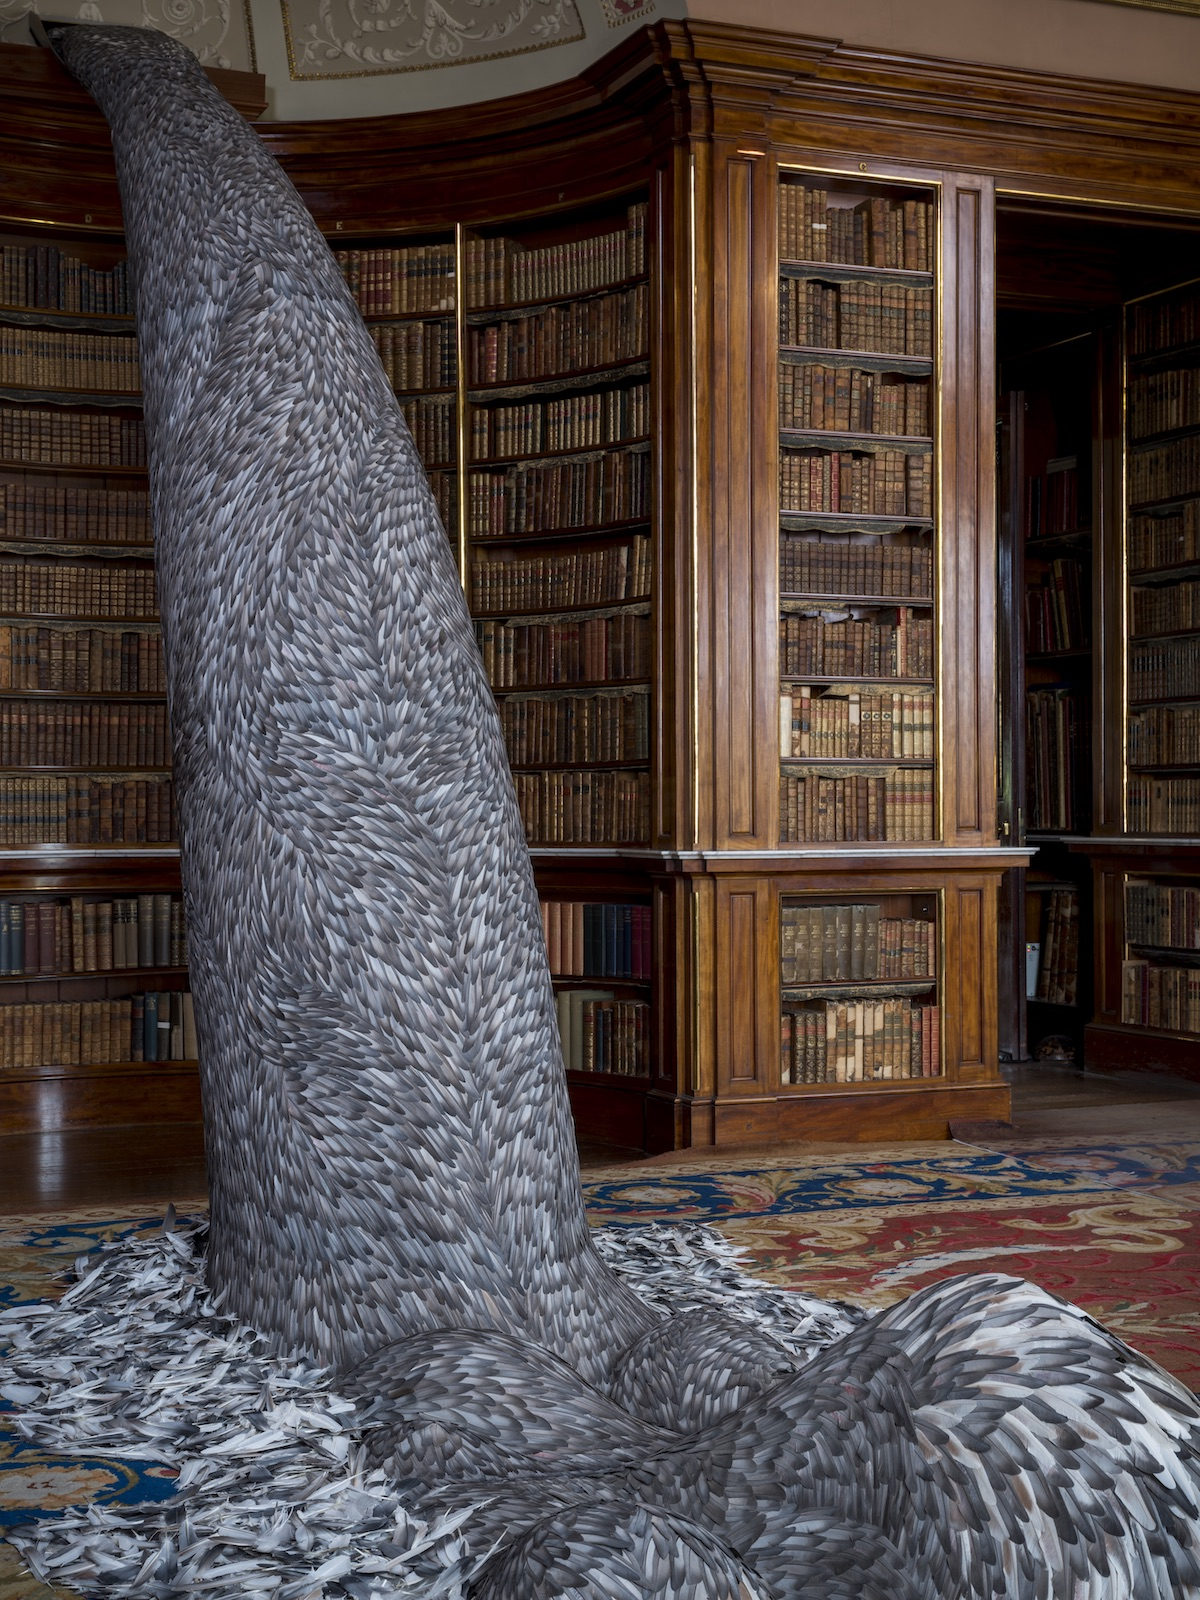 Feather Installation by Kate MccGwire